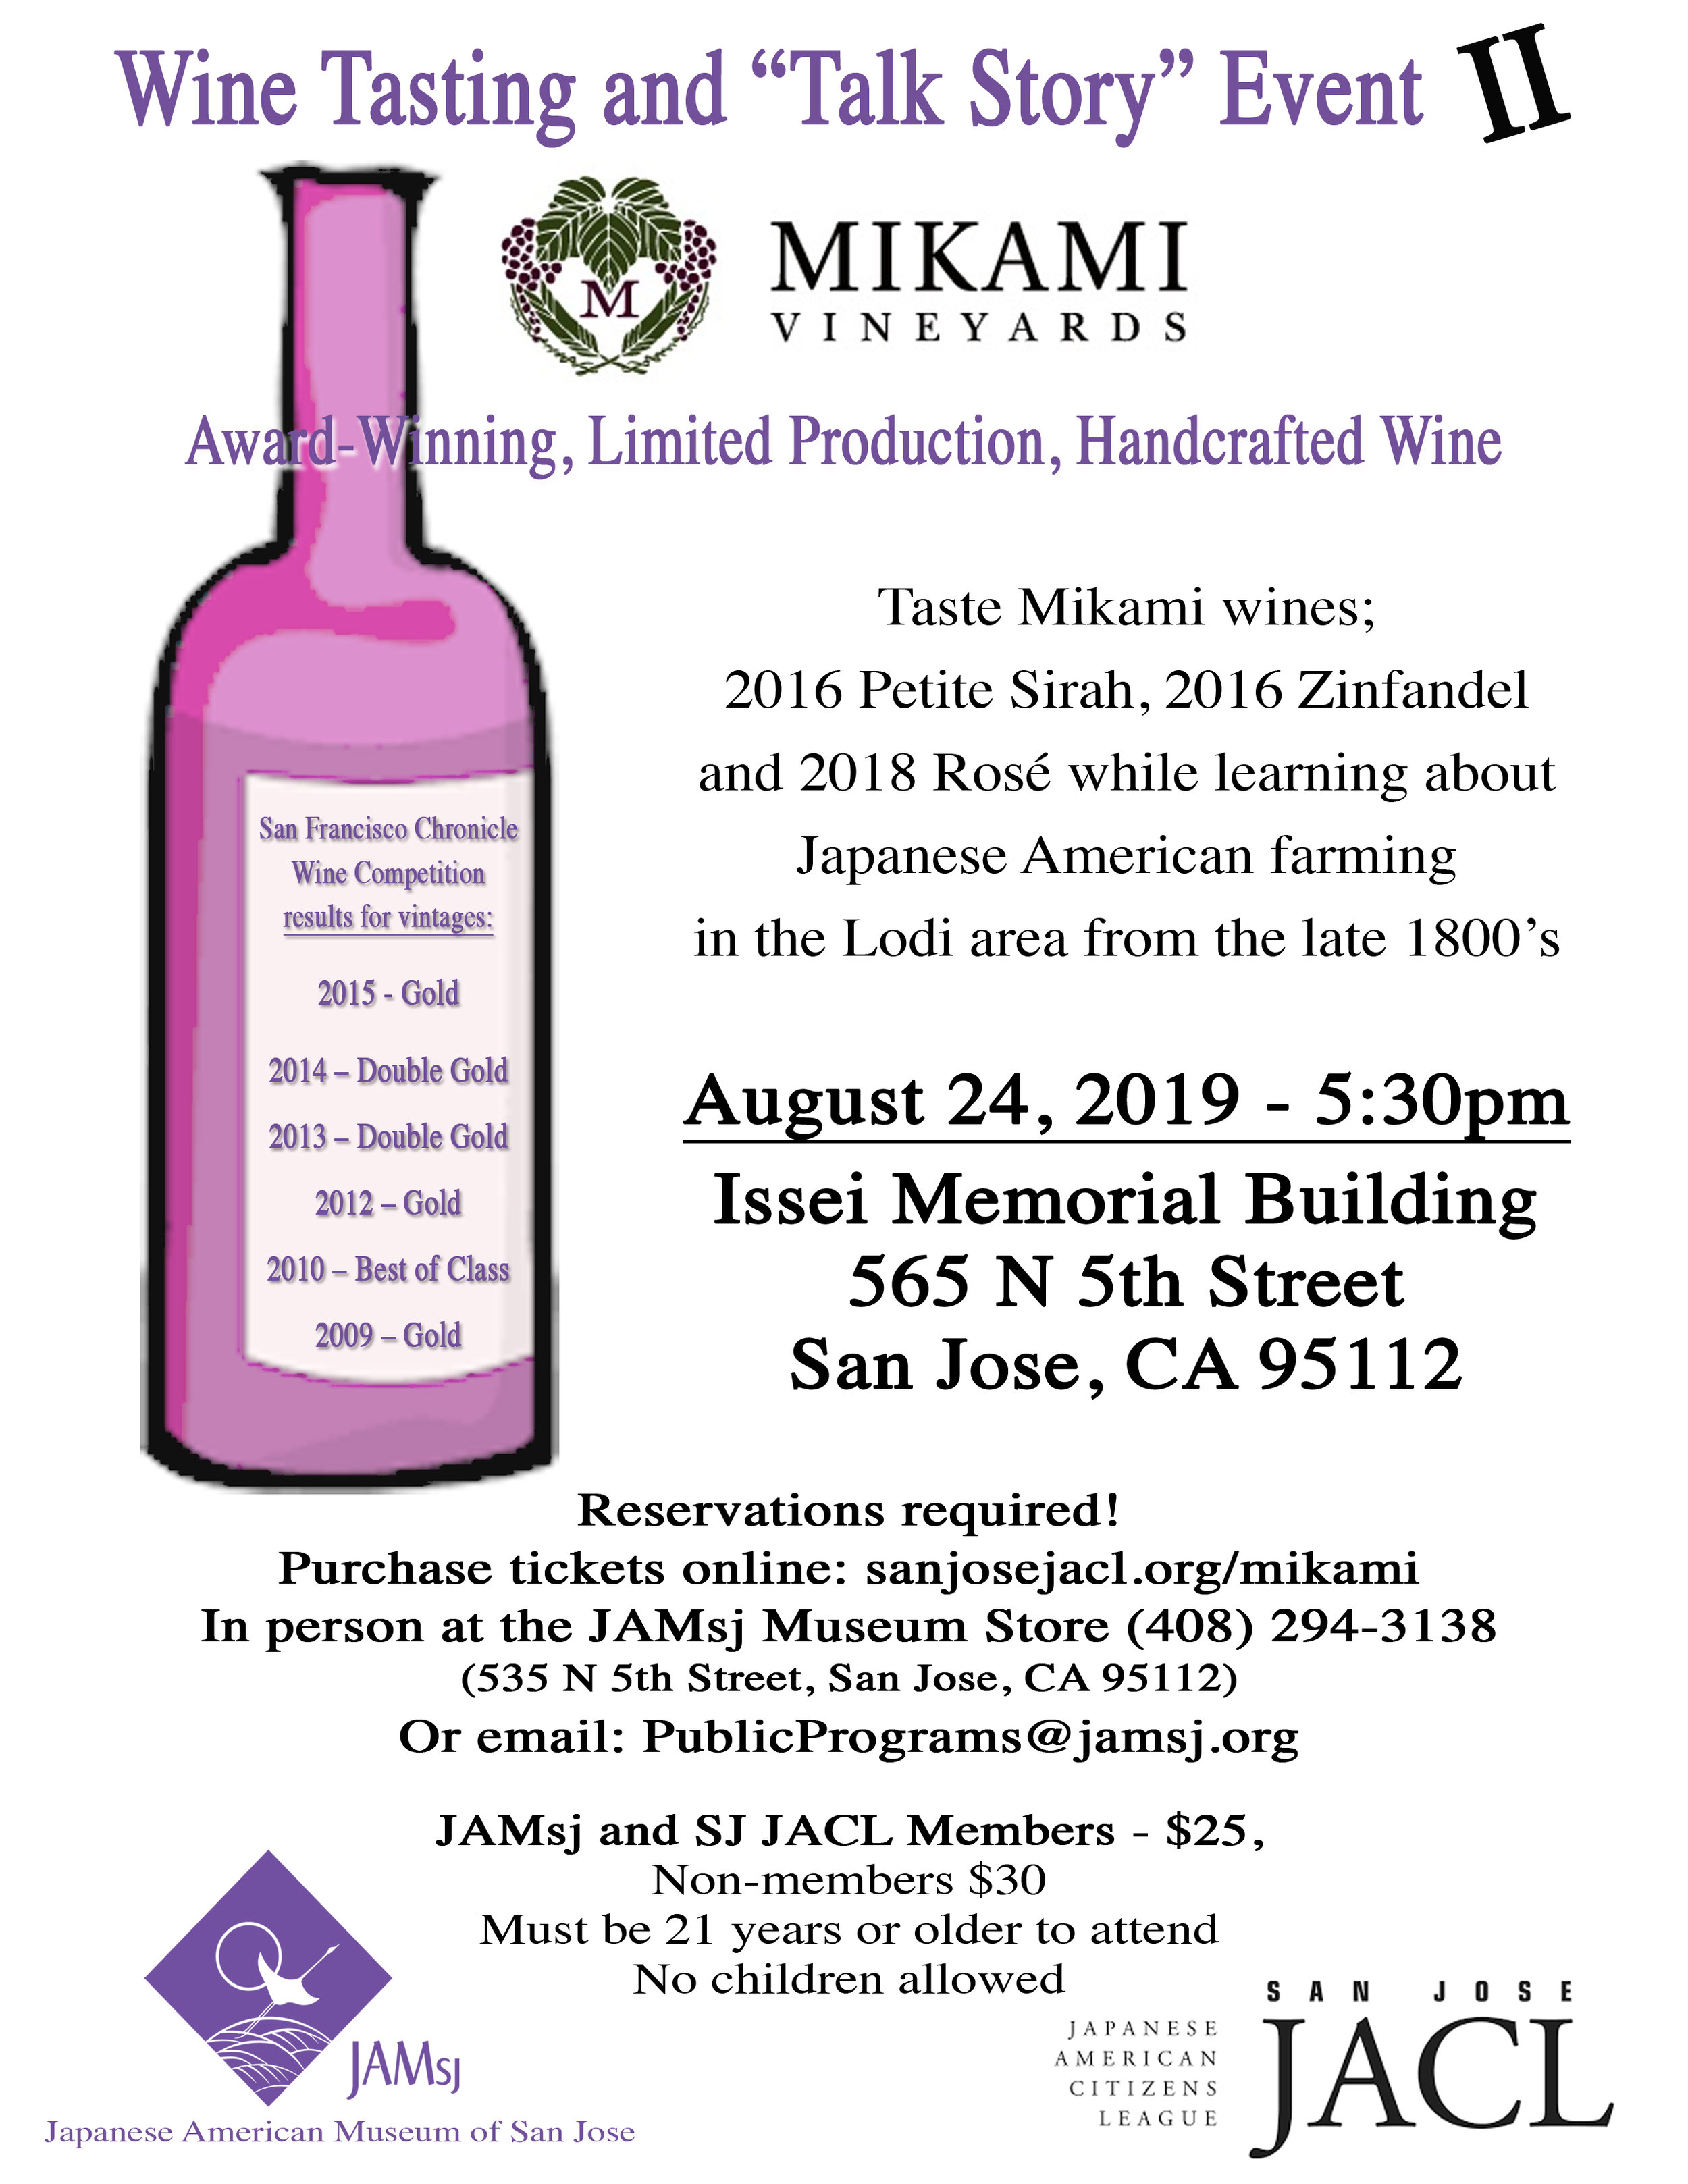 Mikami Vineyards Flyer 2019-1b.jpg